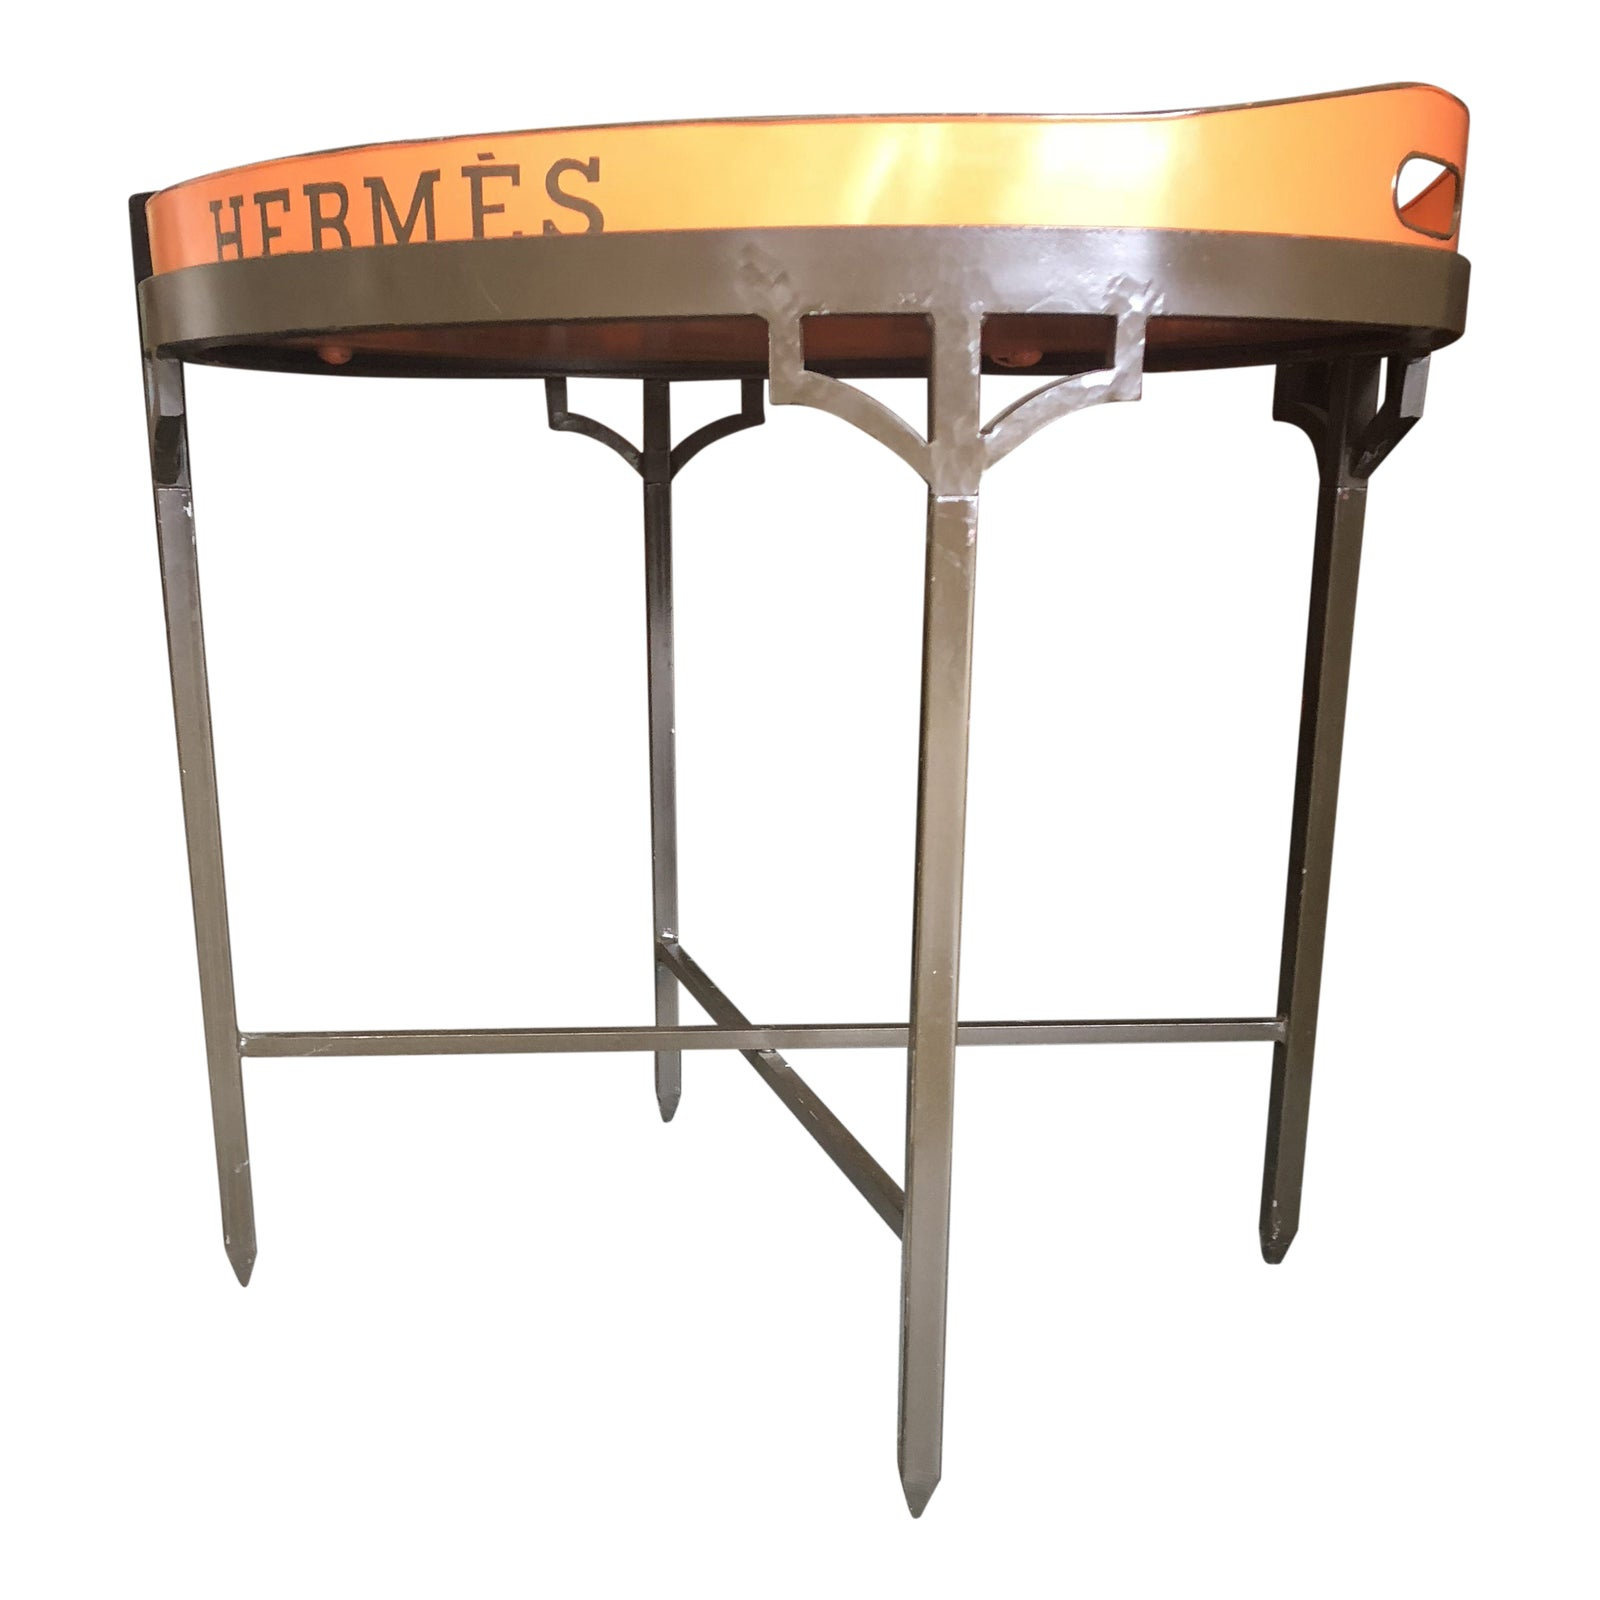 Traditional wrought iron table stand with hermes tray chairish